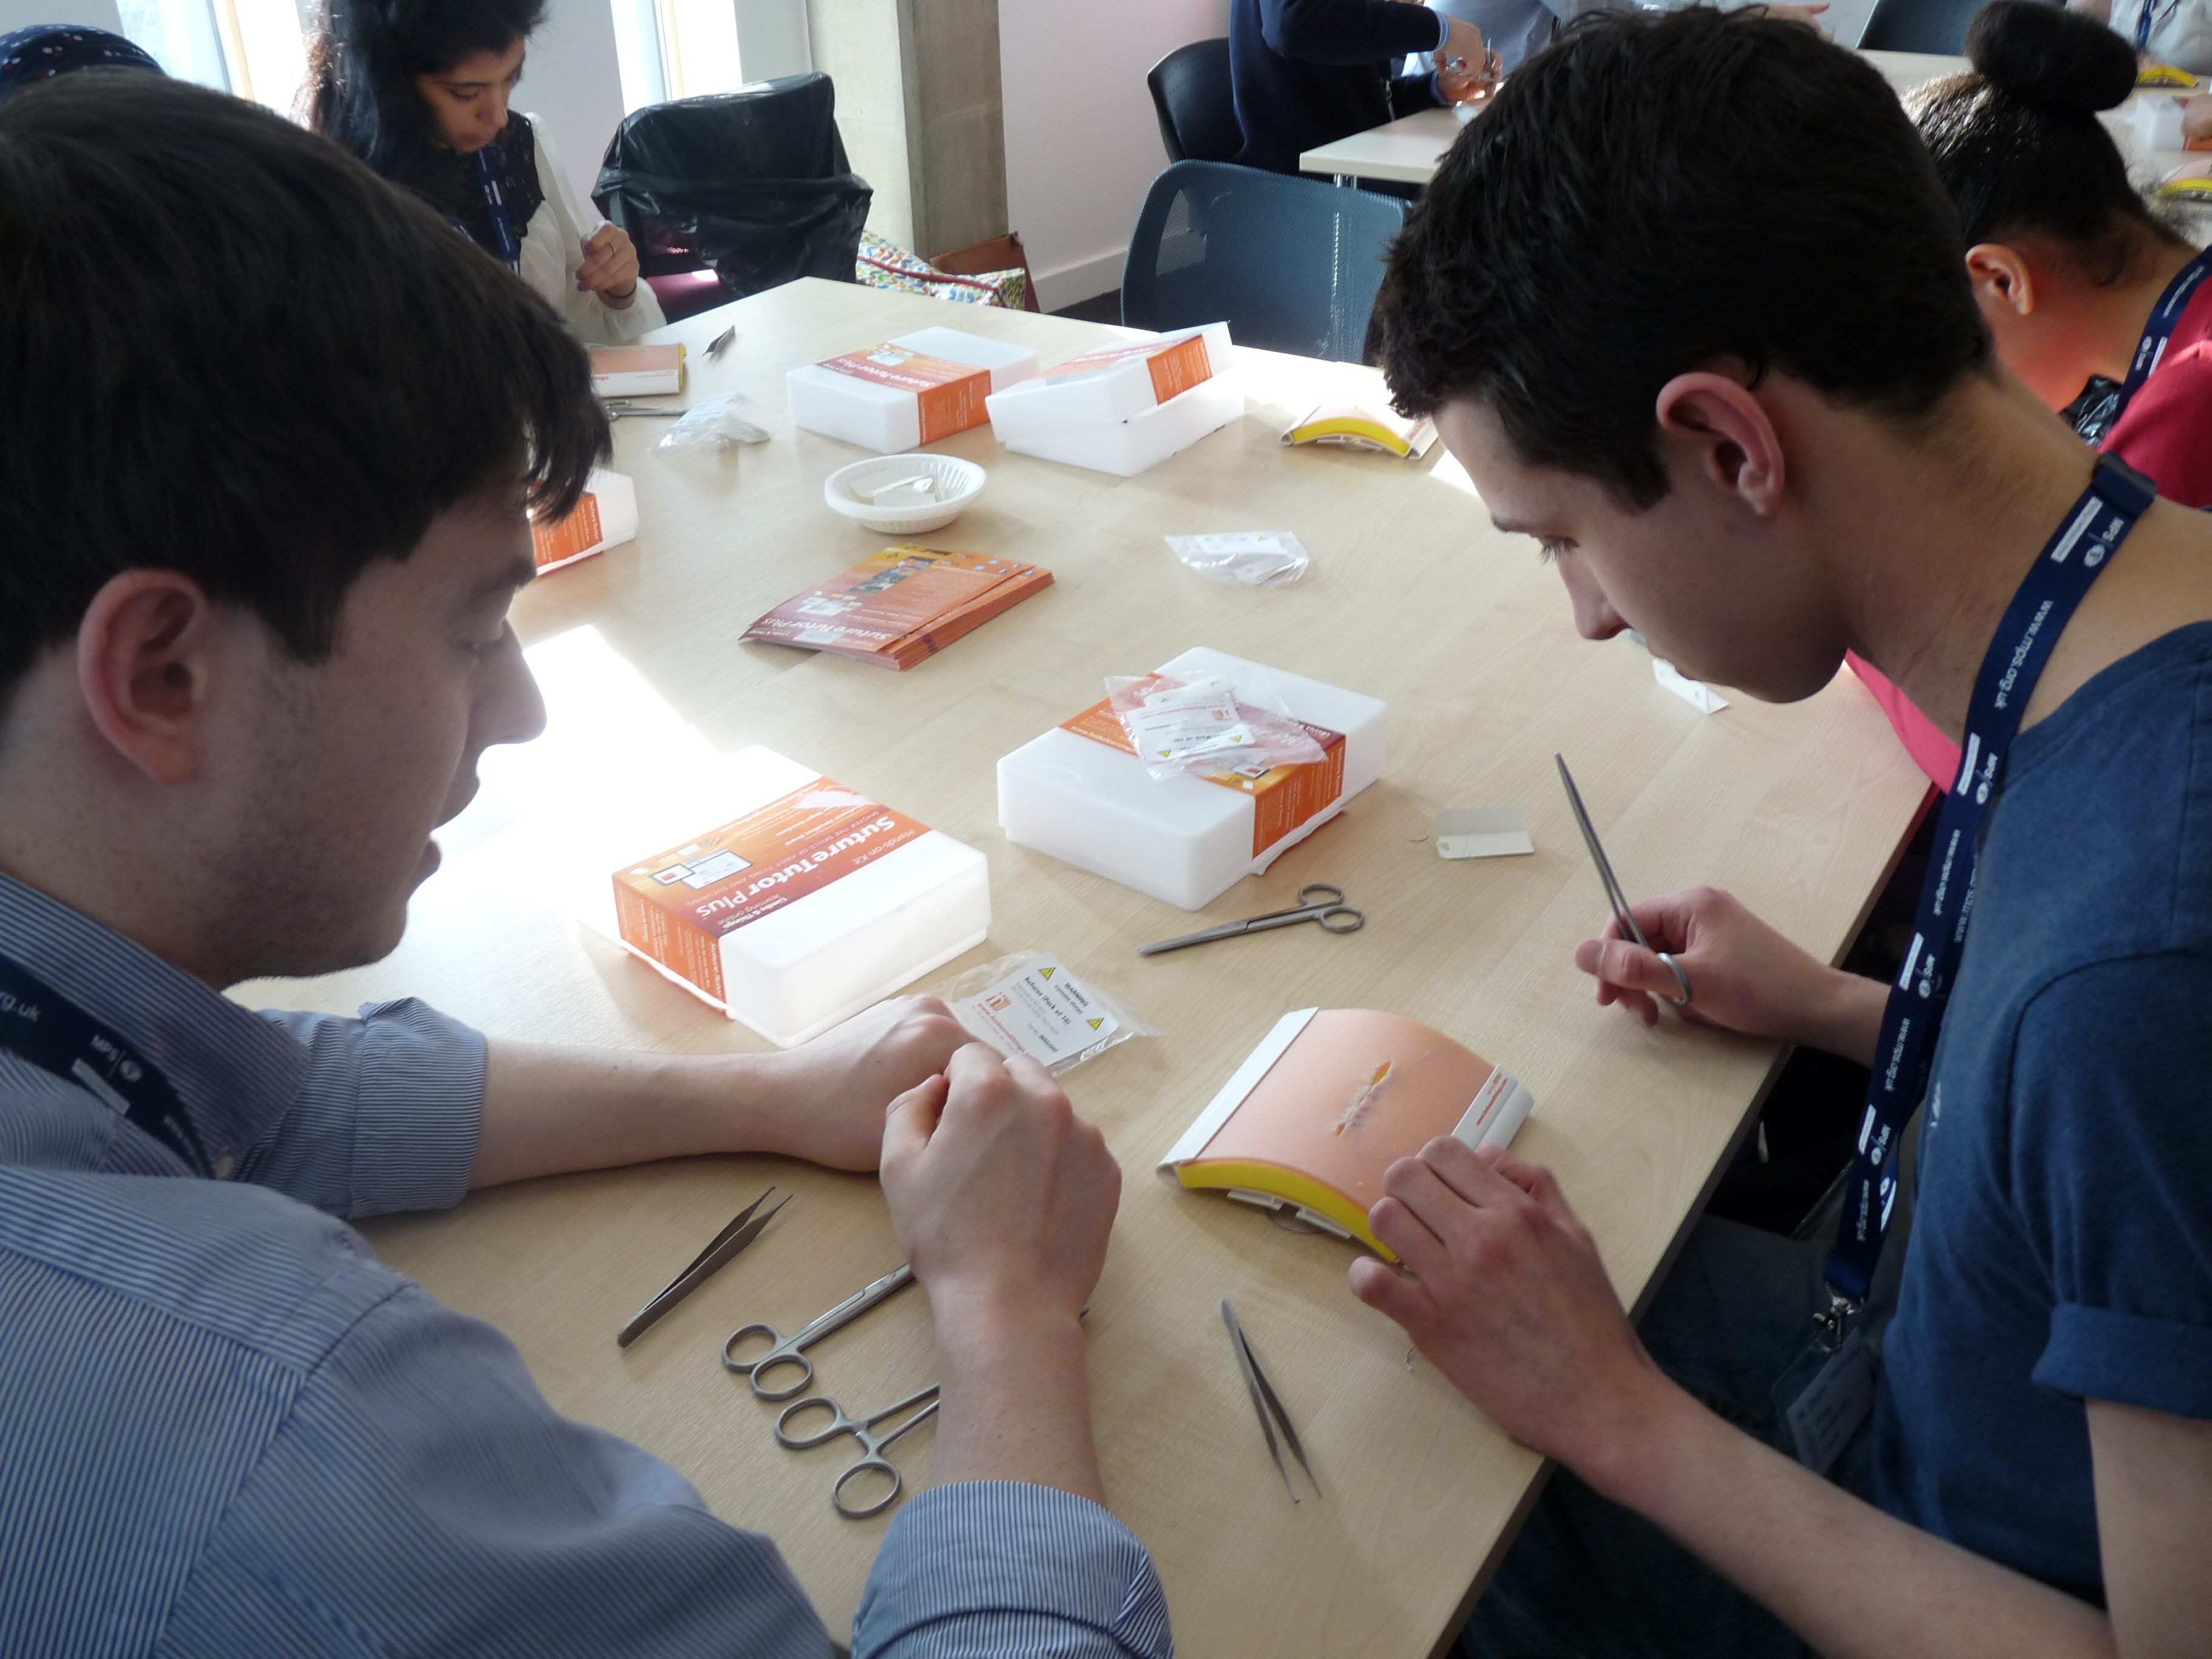 Suturing workshop